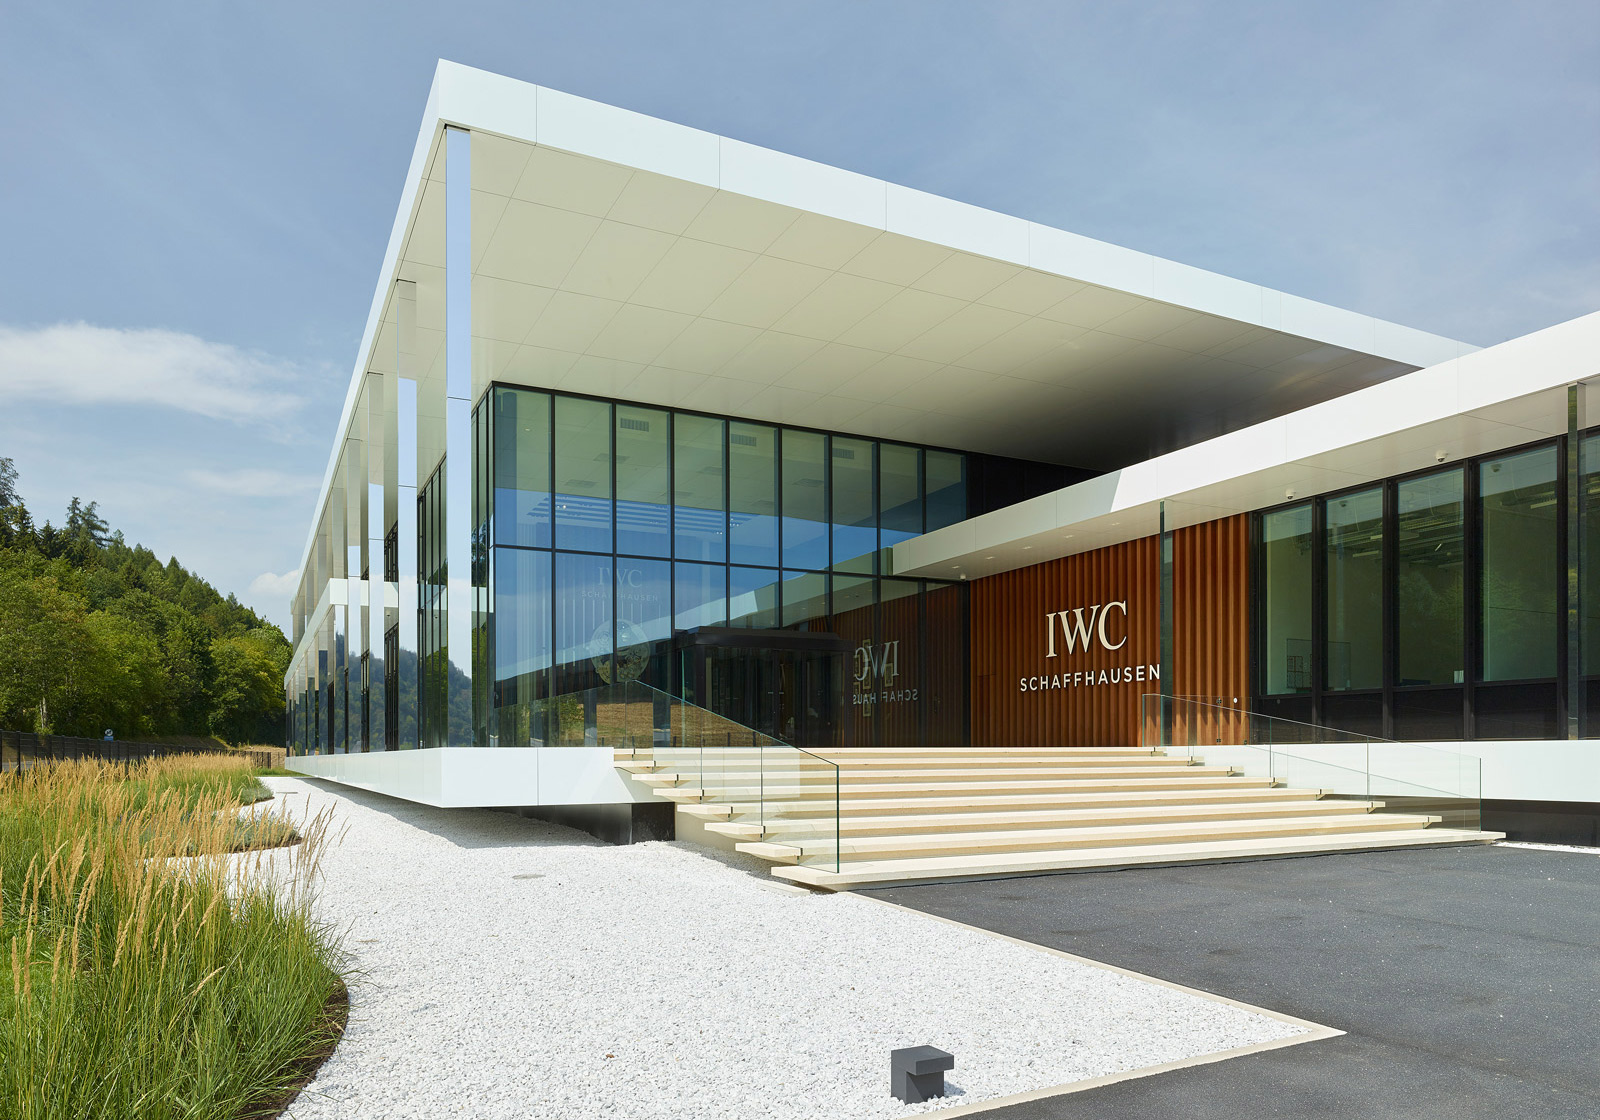 Integrally designed with BIM: The IWC Manufacturing Center in Schaffhausen. Photo: ATP/Jantscher